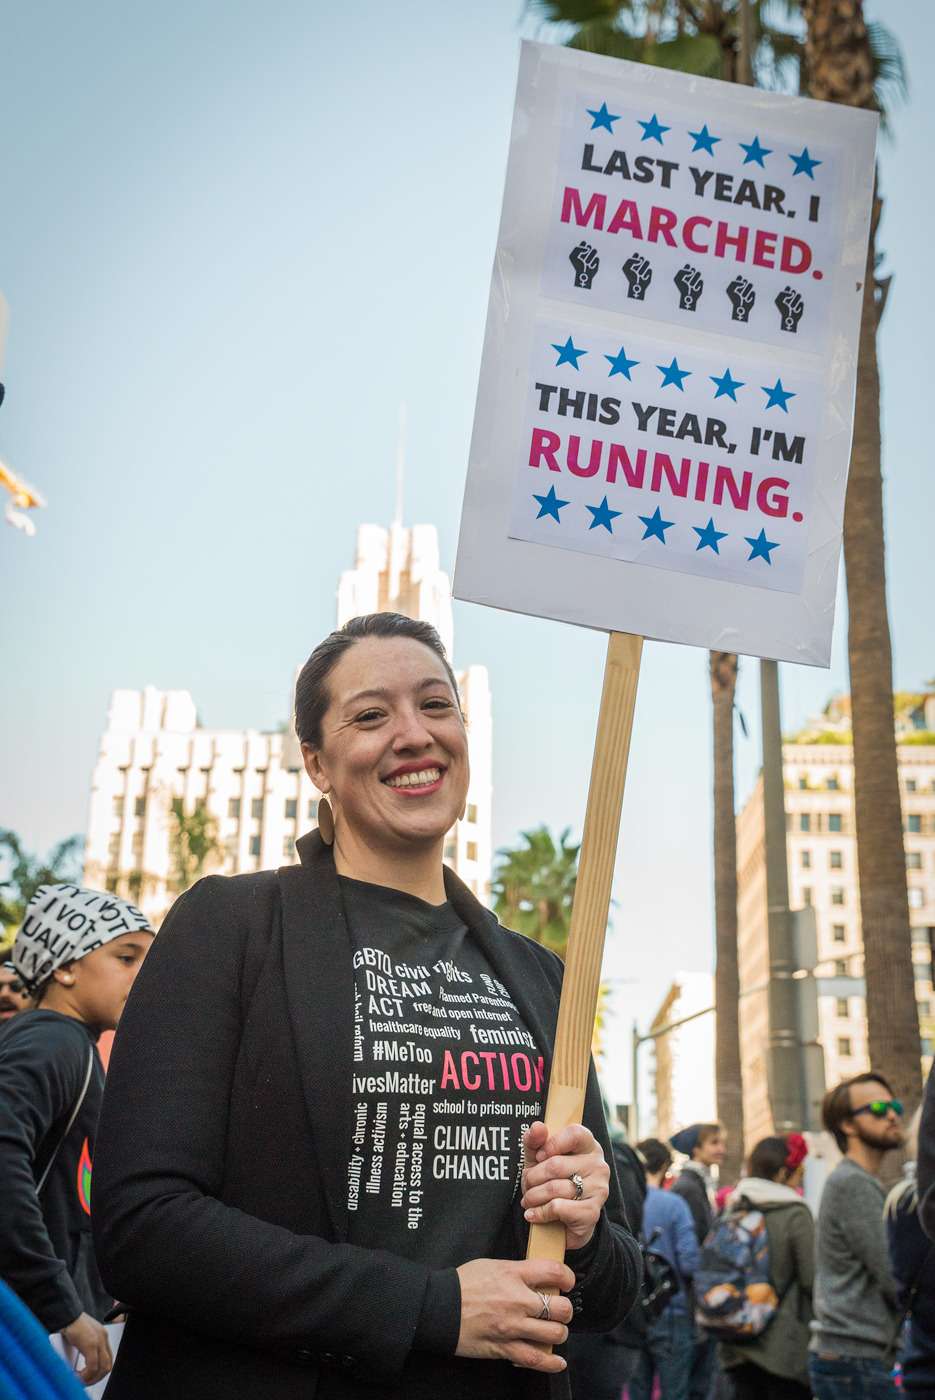 (2018) The second Women's March's signs reflect the conversations among the marchers: Some are running for office, some are supporting others' campaigns and some will vote for the first time in the coming elections.